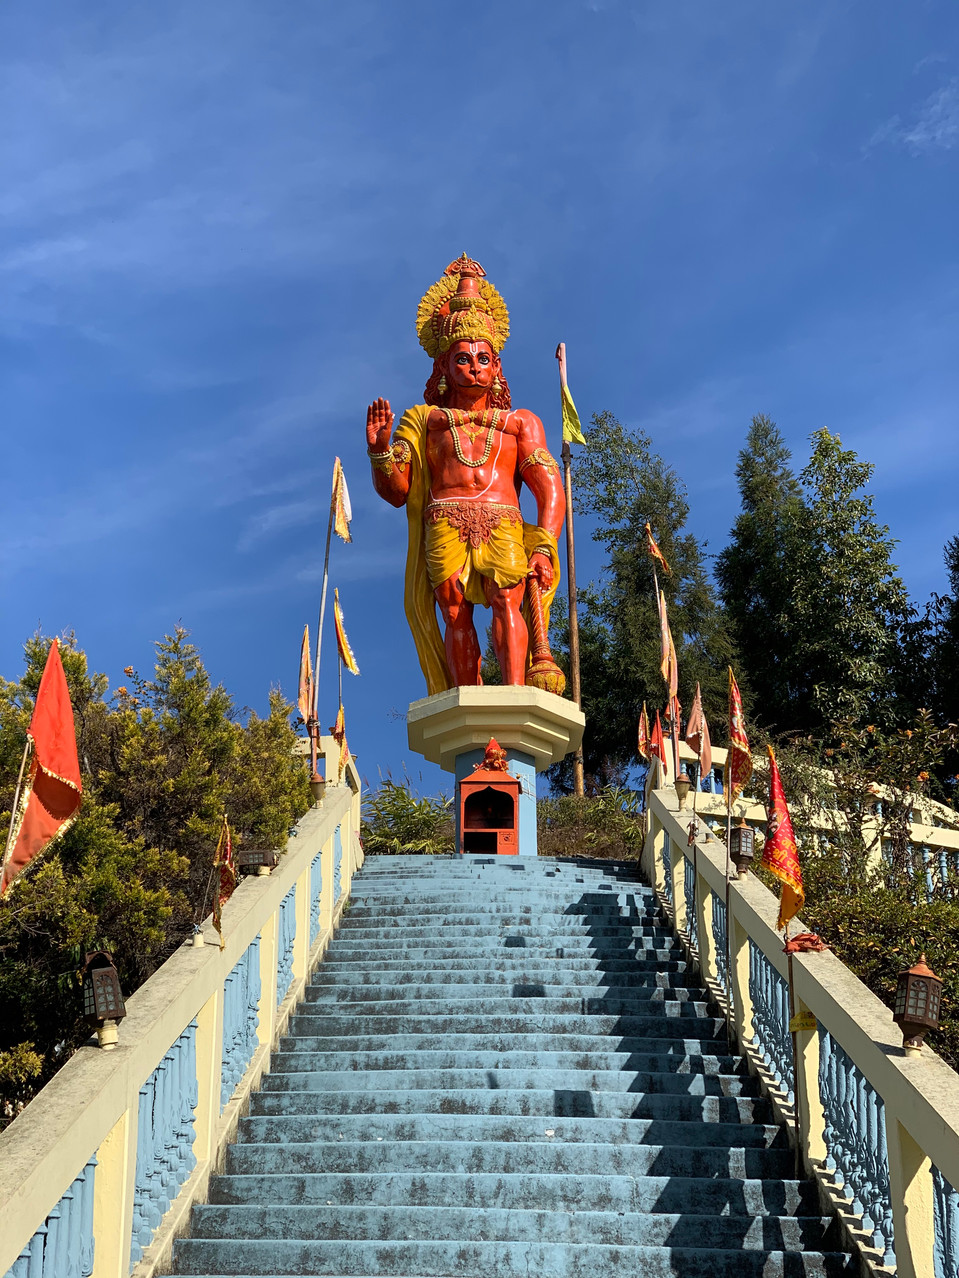 Kalimpong Statue in the Indian himilayas